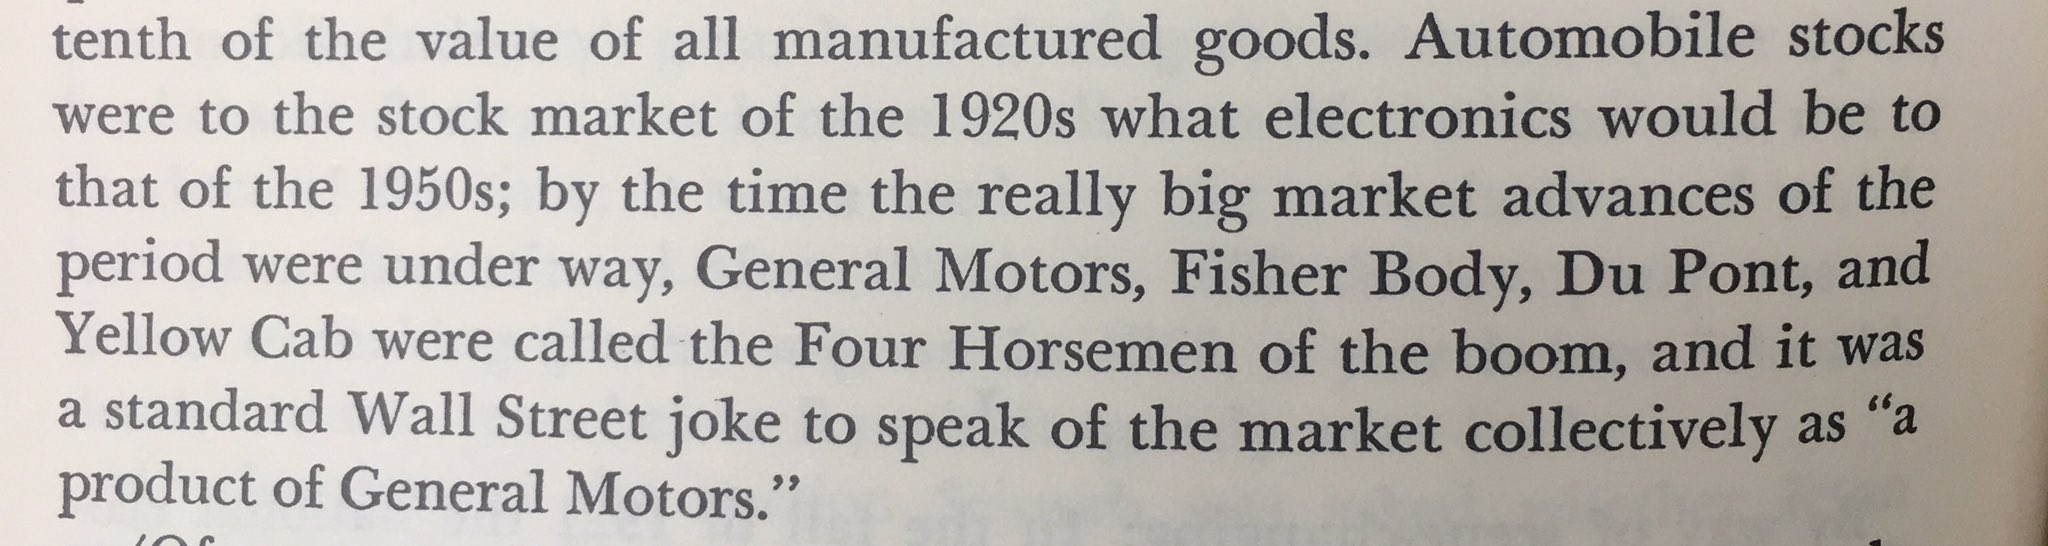 Sounds familiar. The FANG stocks of the Roaring 1920s were called the 4 Horsemen https://t.co/0rKuH6s3lo